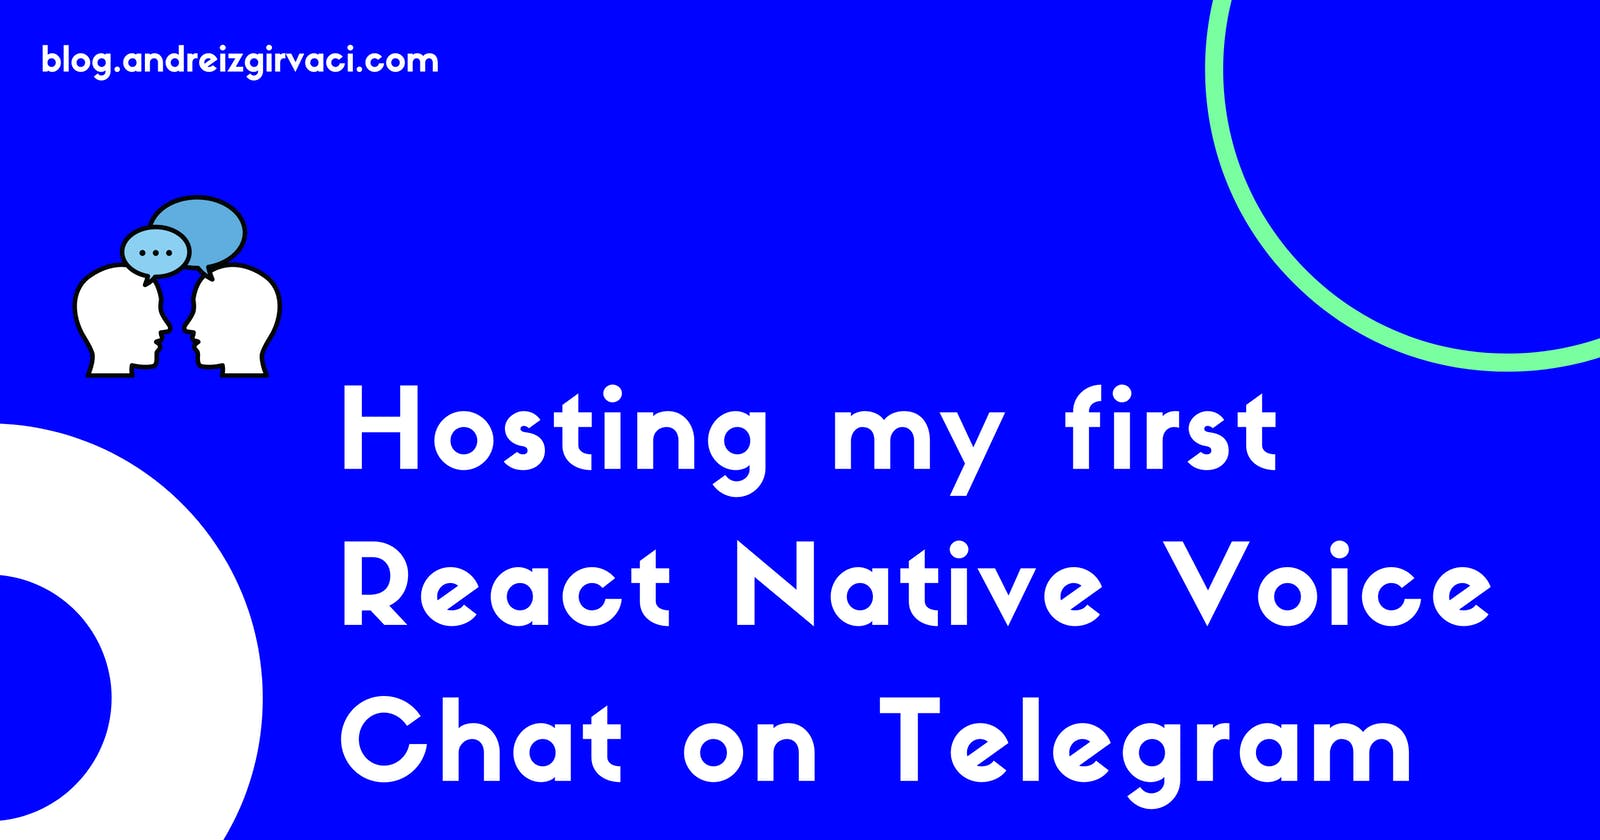 Hosting my first React Native Voice Chat on Telegram